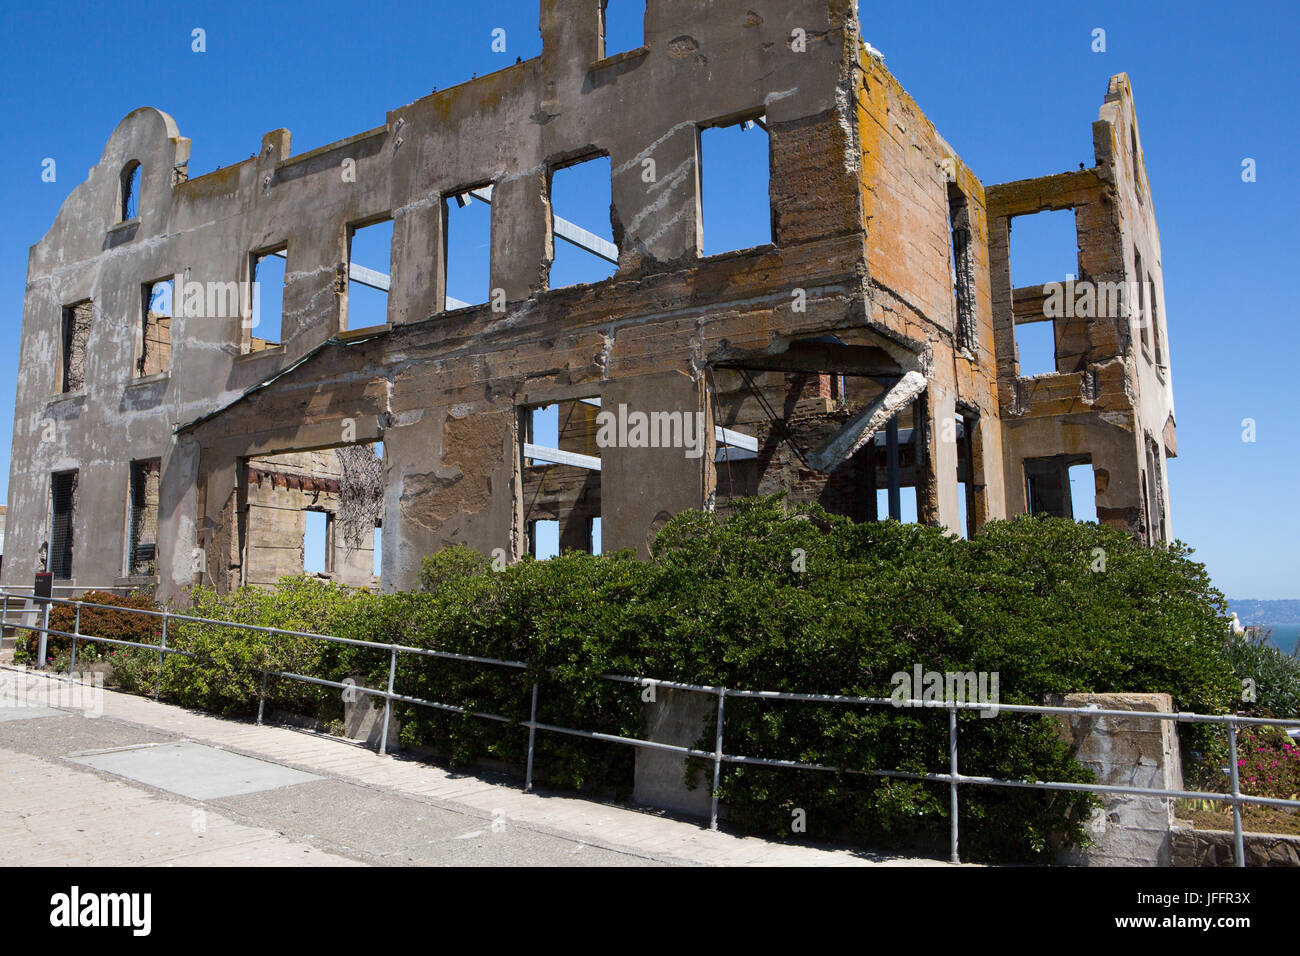 The crumbling ruins of the Warden's House, at Alcatraz Federal Penitentiary. - Stock Image